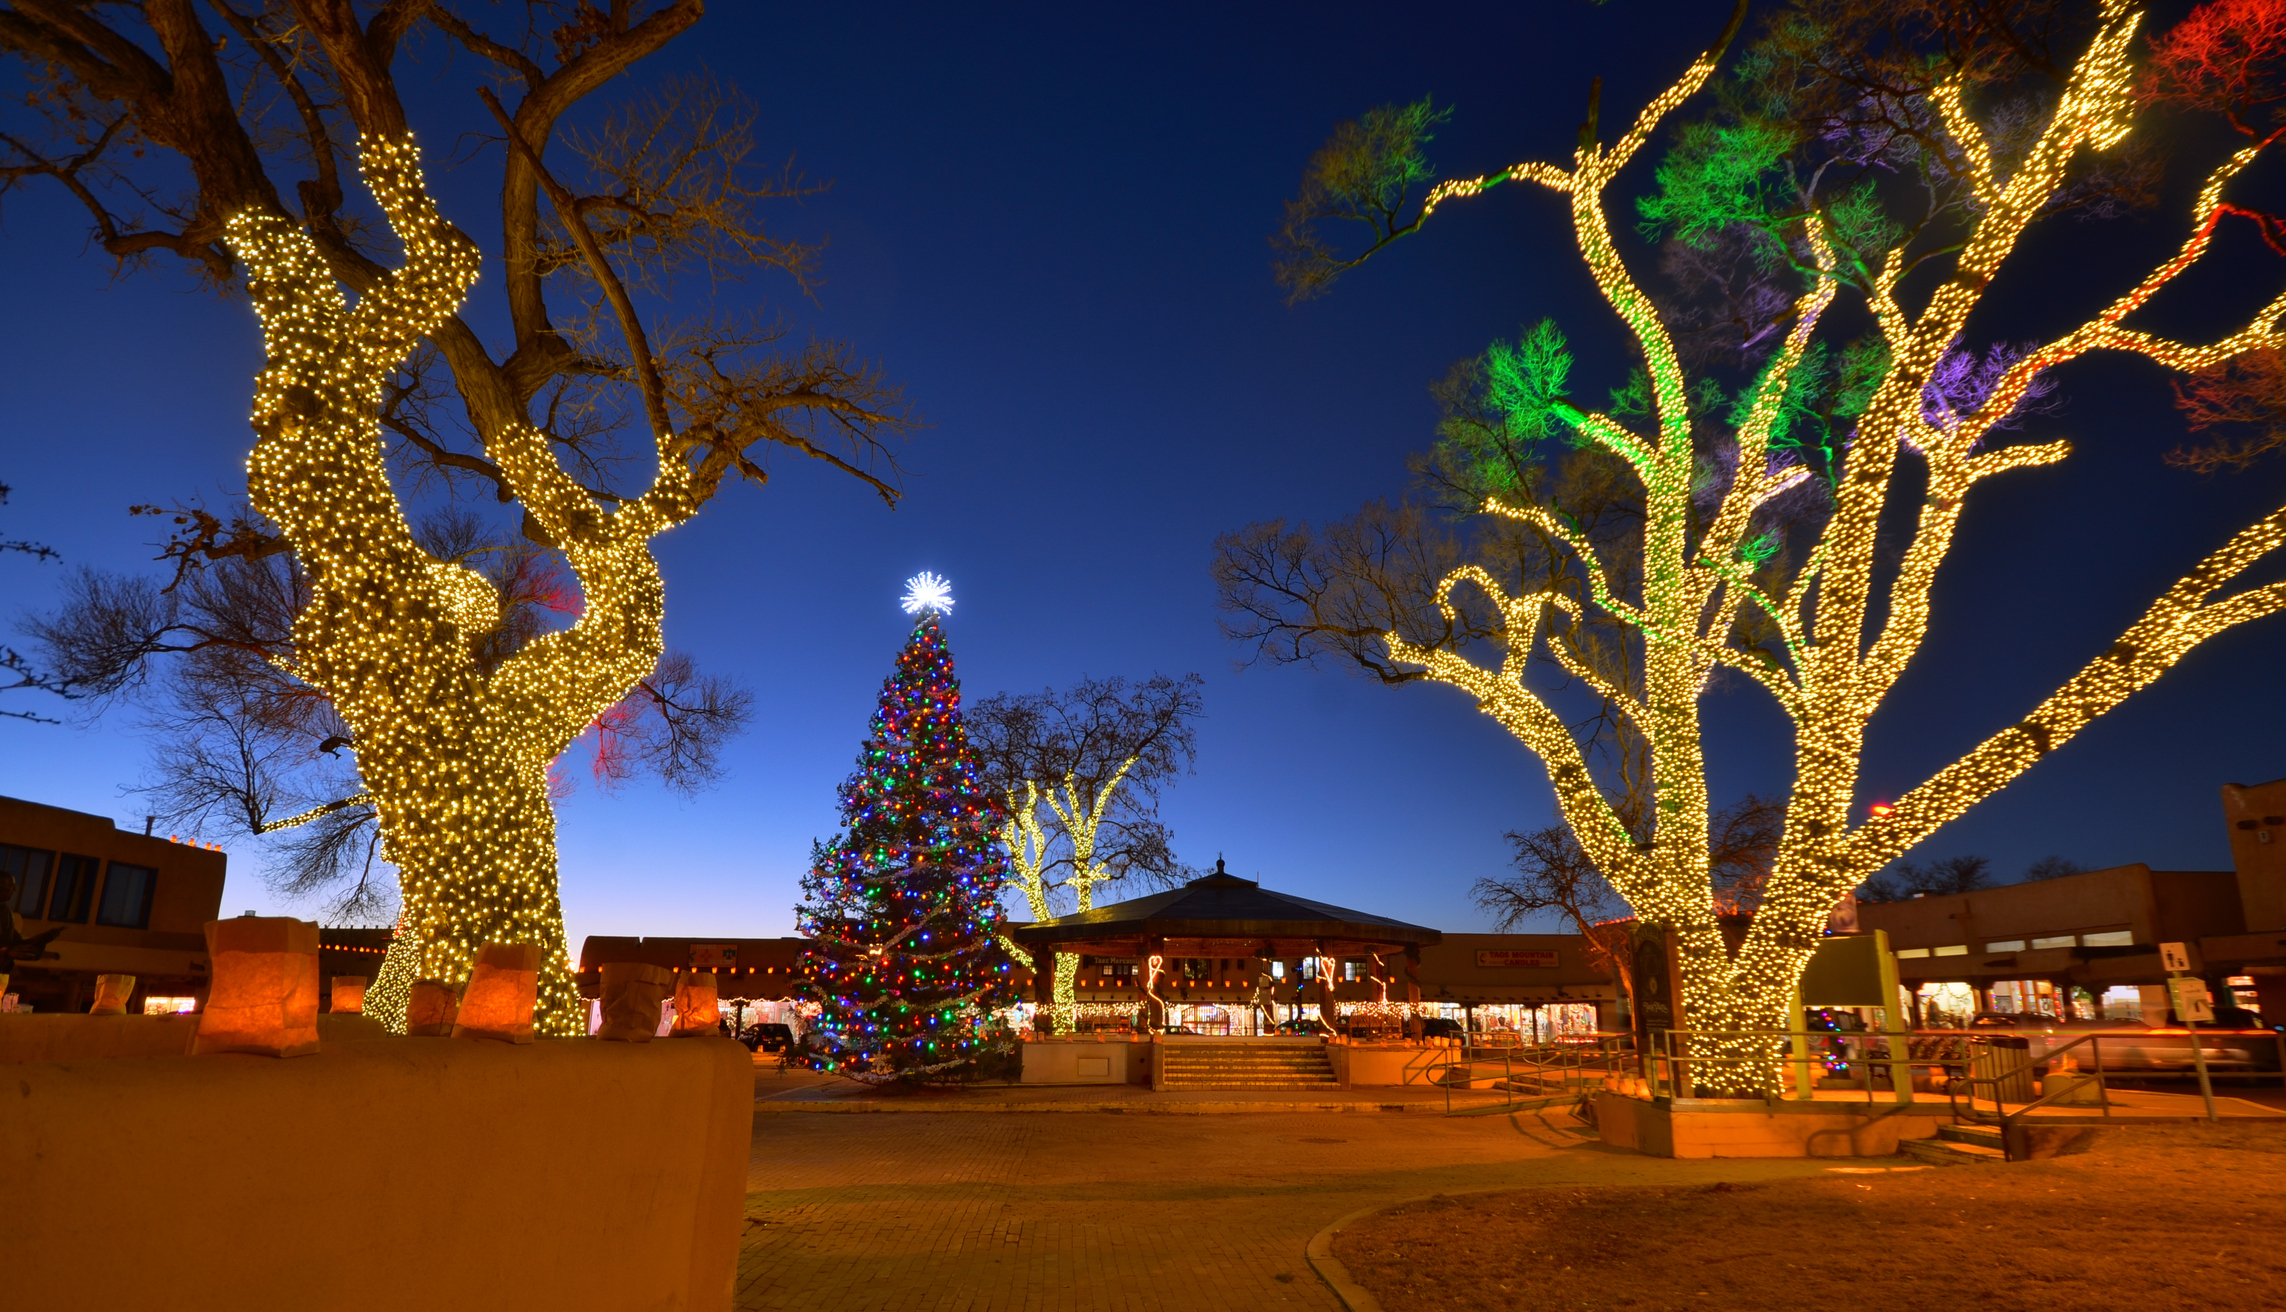 Elegant trees wrapped with lights.